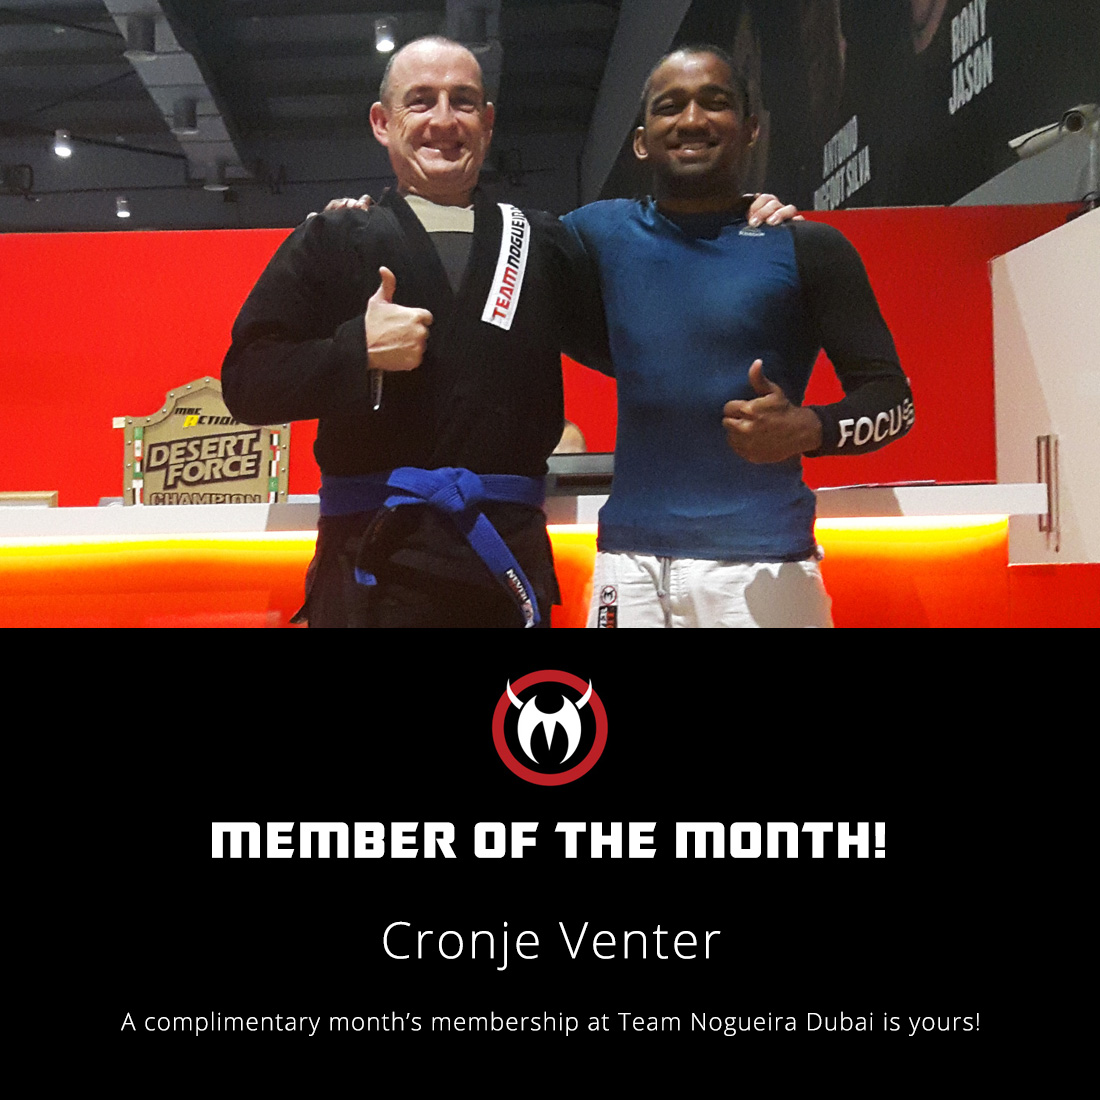 Cronje Venter October Member of the Month